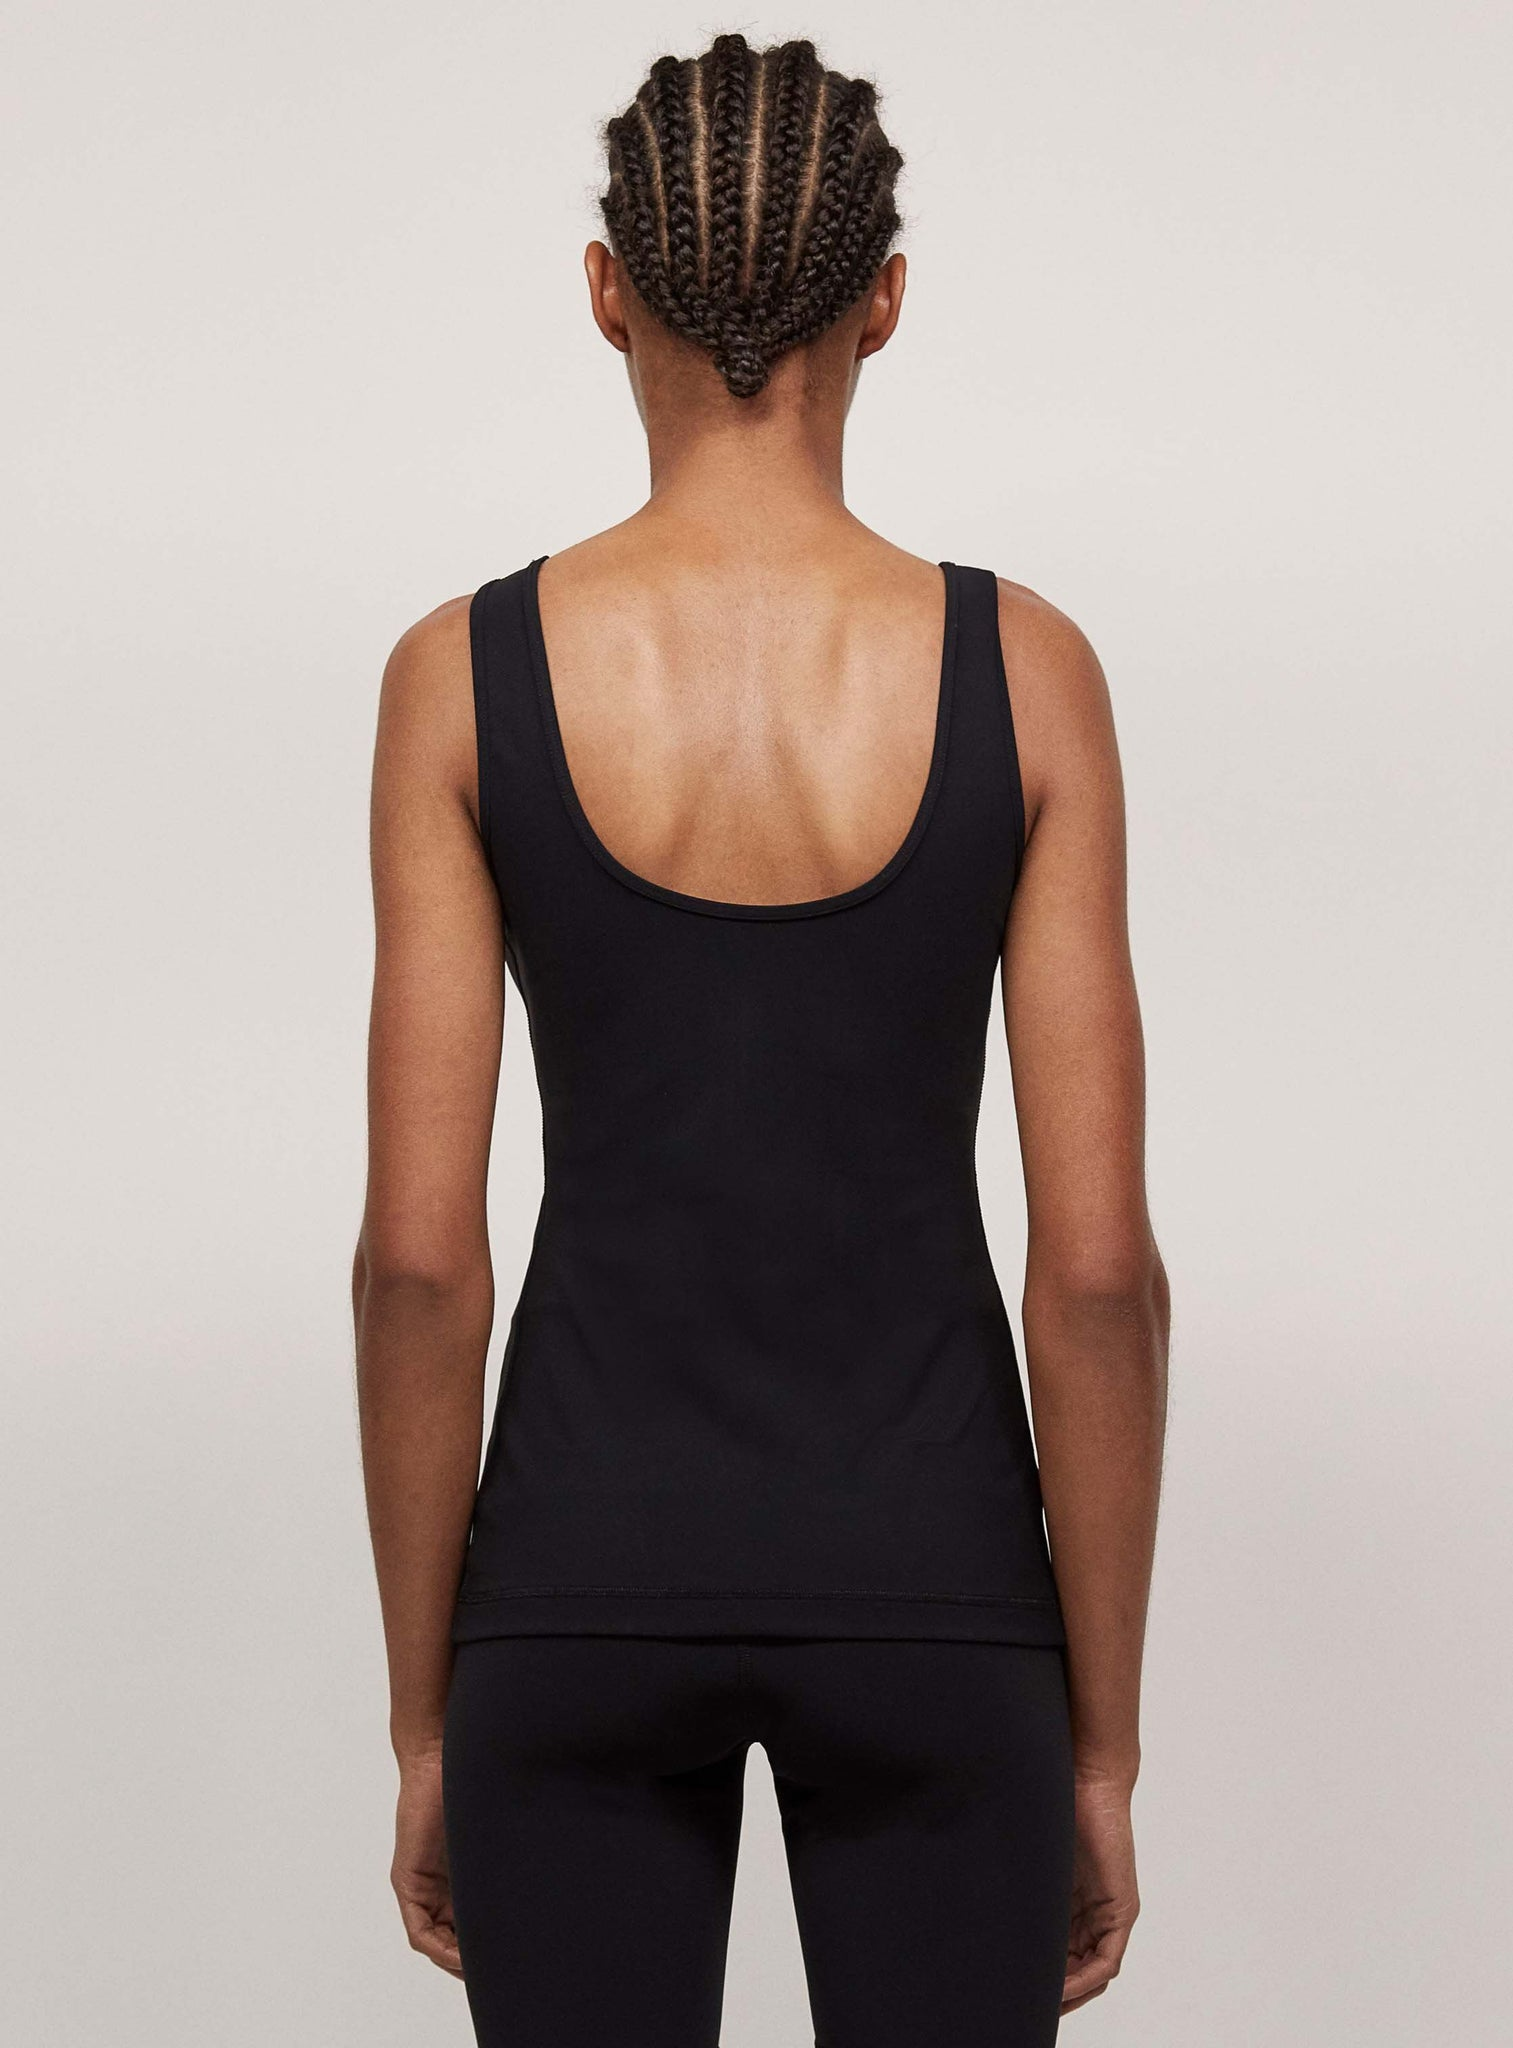 WARDROBE.NYC Tank Top |W02